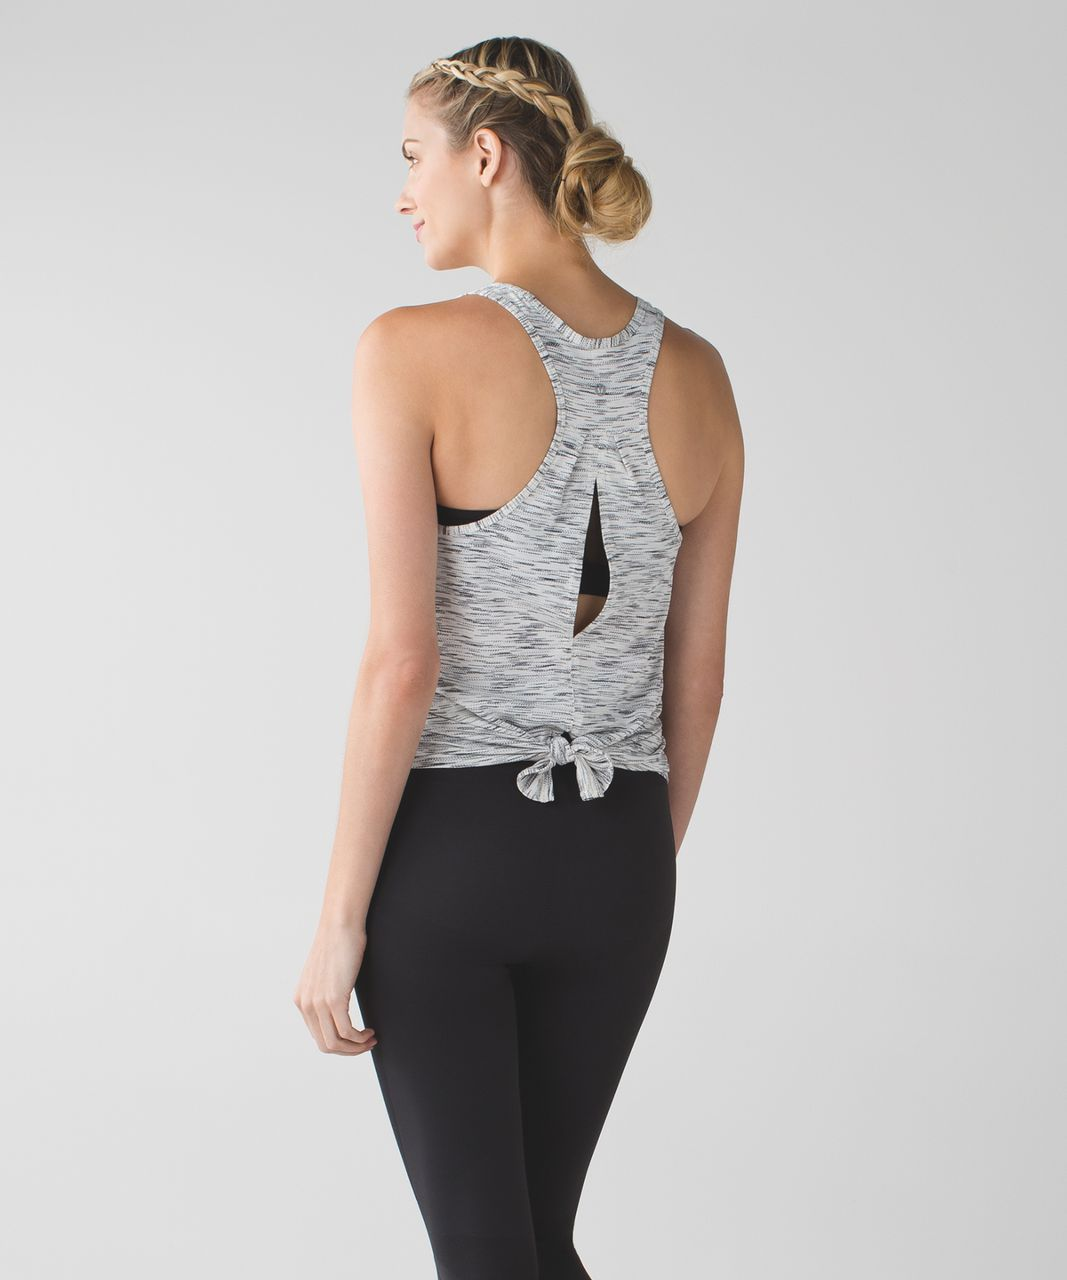 Lululemon Salute the Sun Tank - Tiger Space Dye Black White